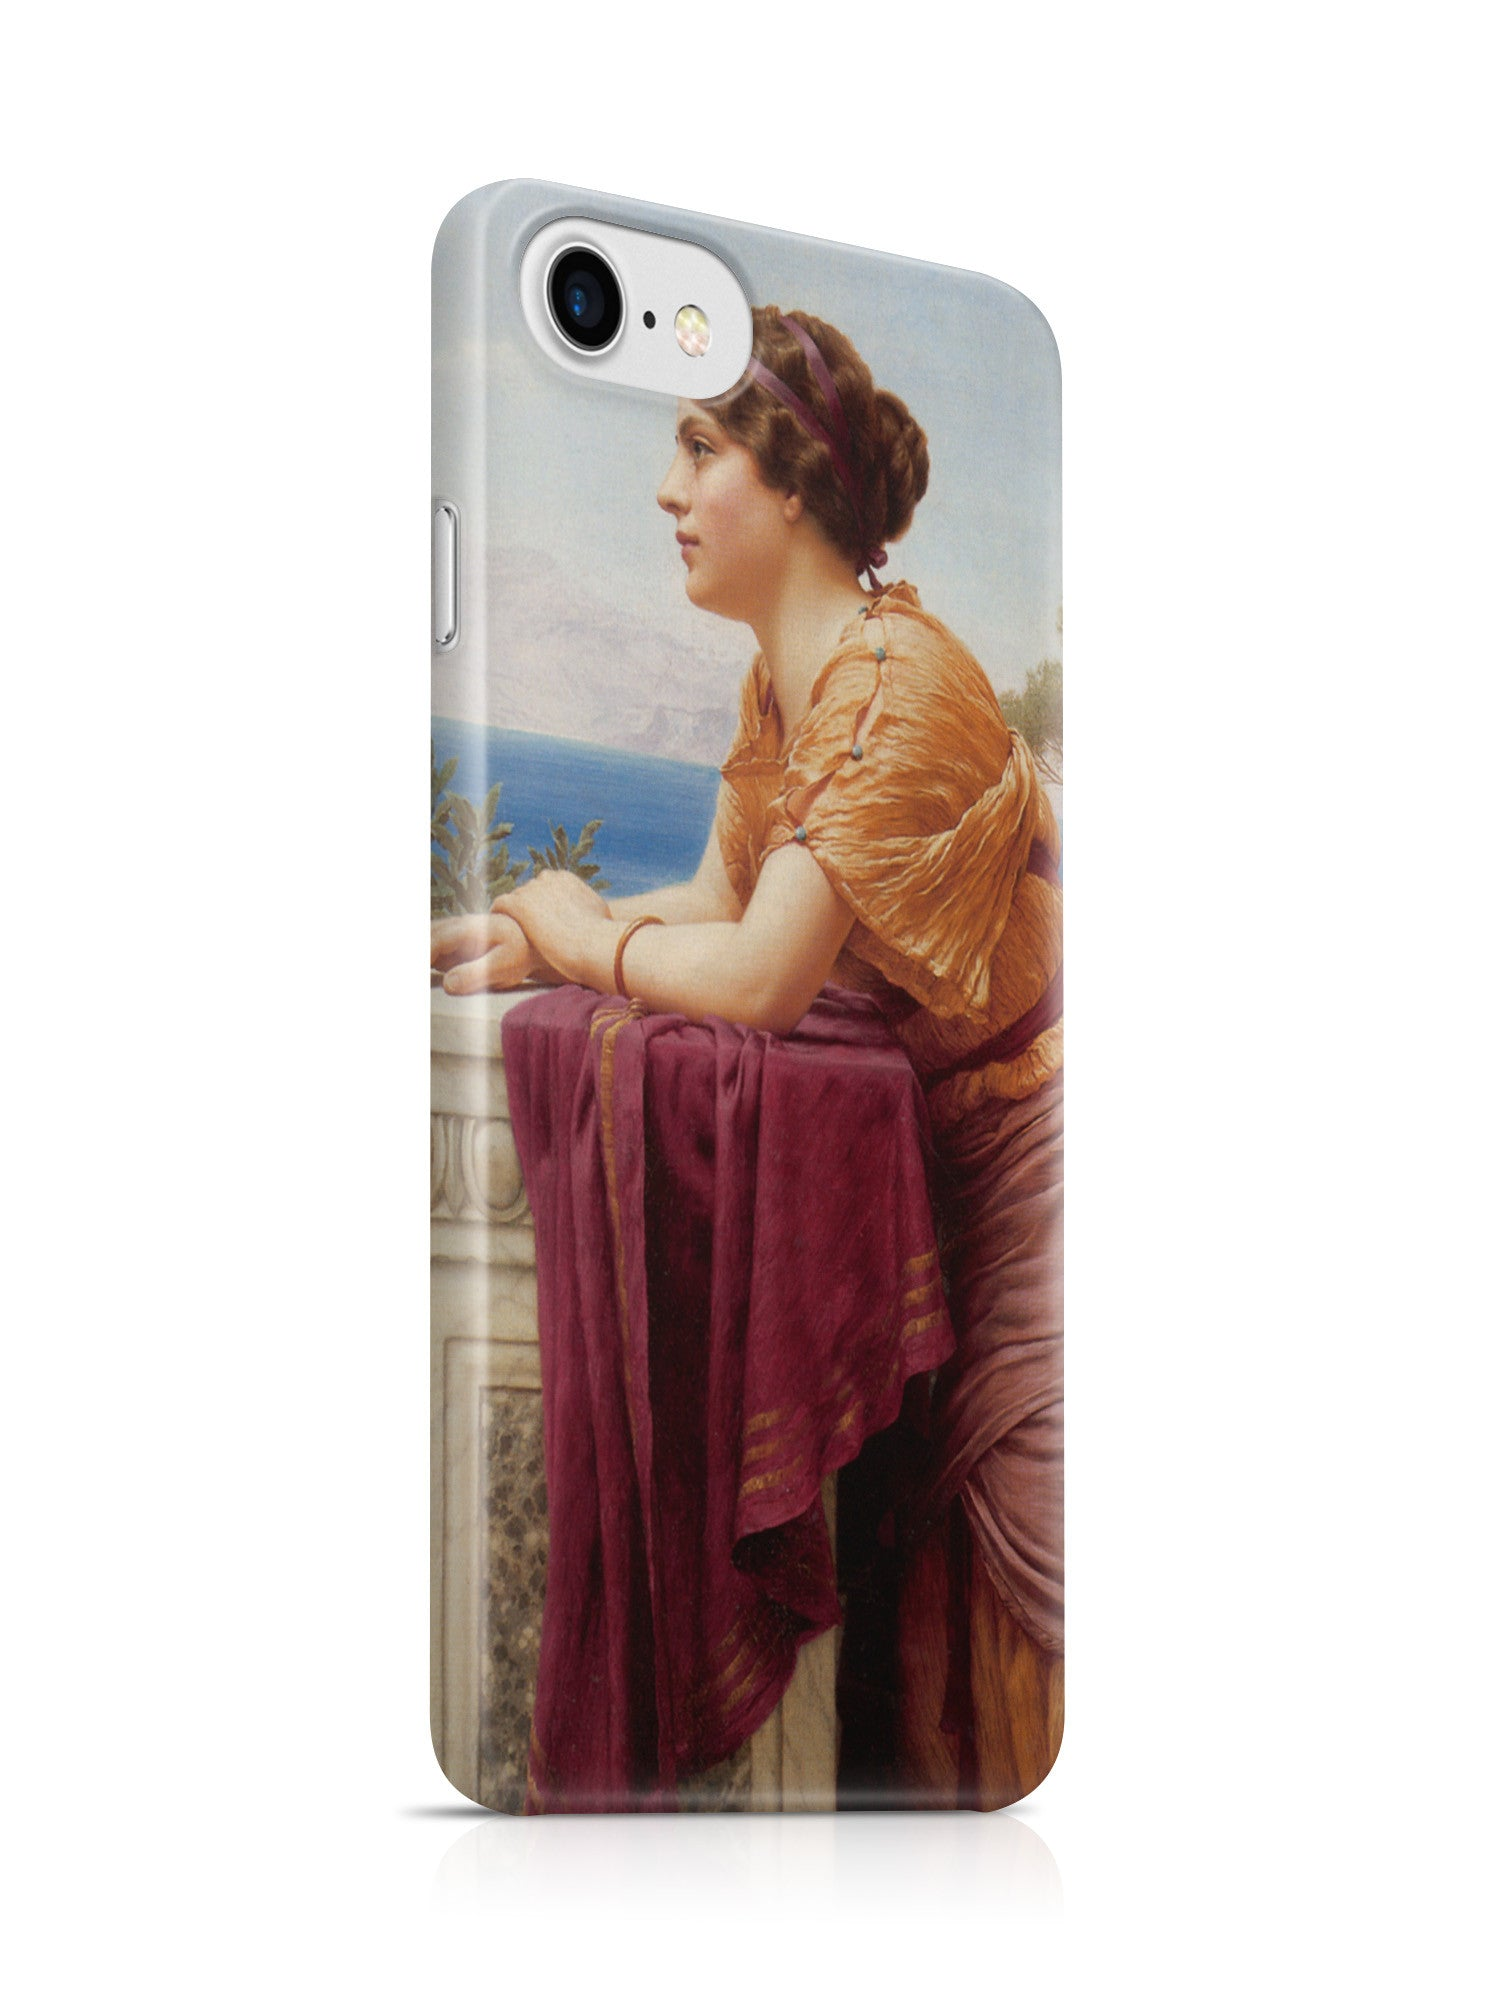 Vinteja Officially Licensed - Godward - The belvedere - Curated Case Cover For IPHONE 7